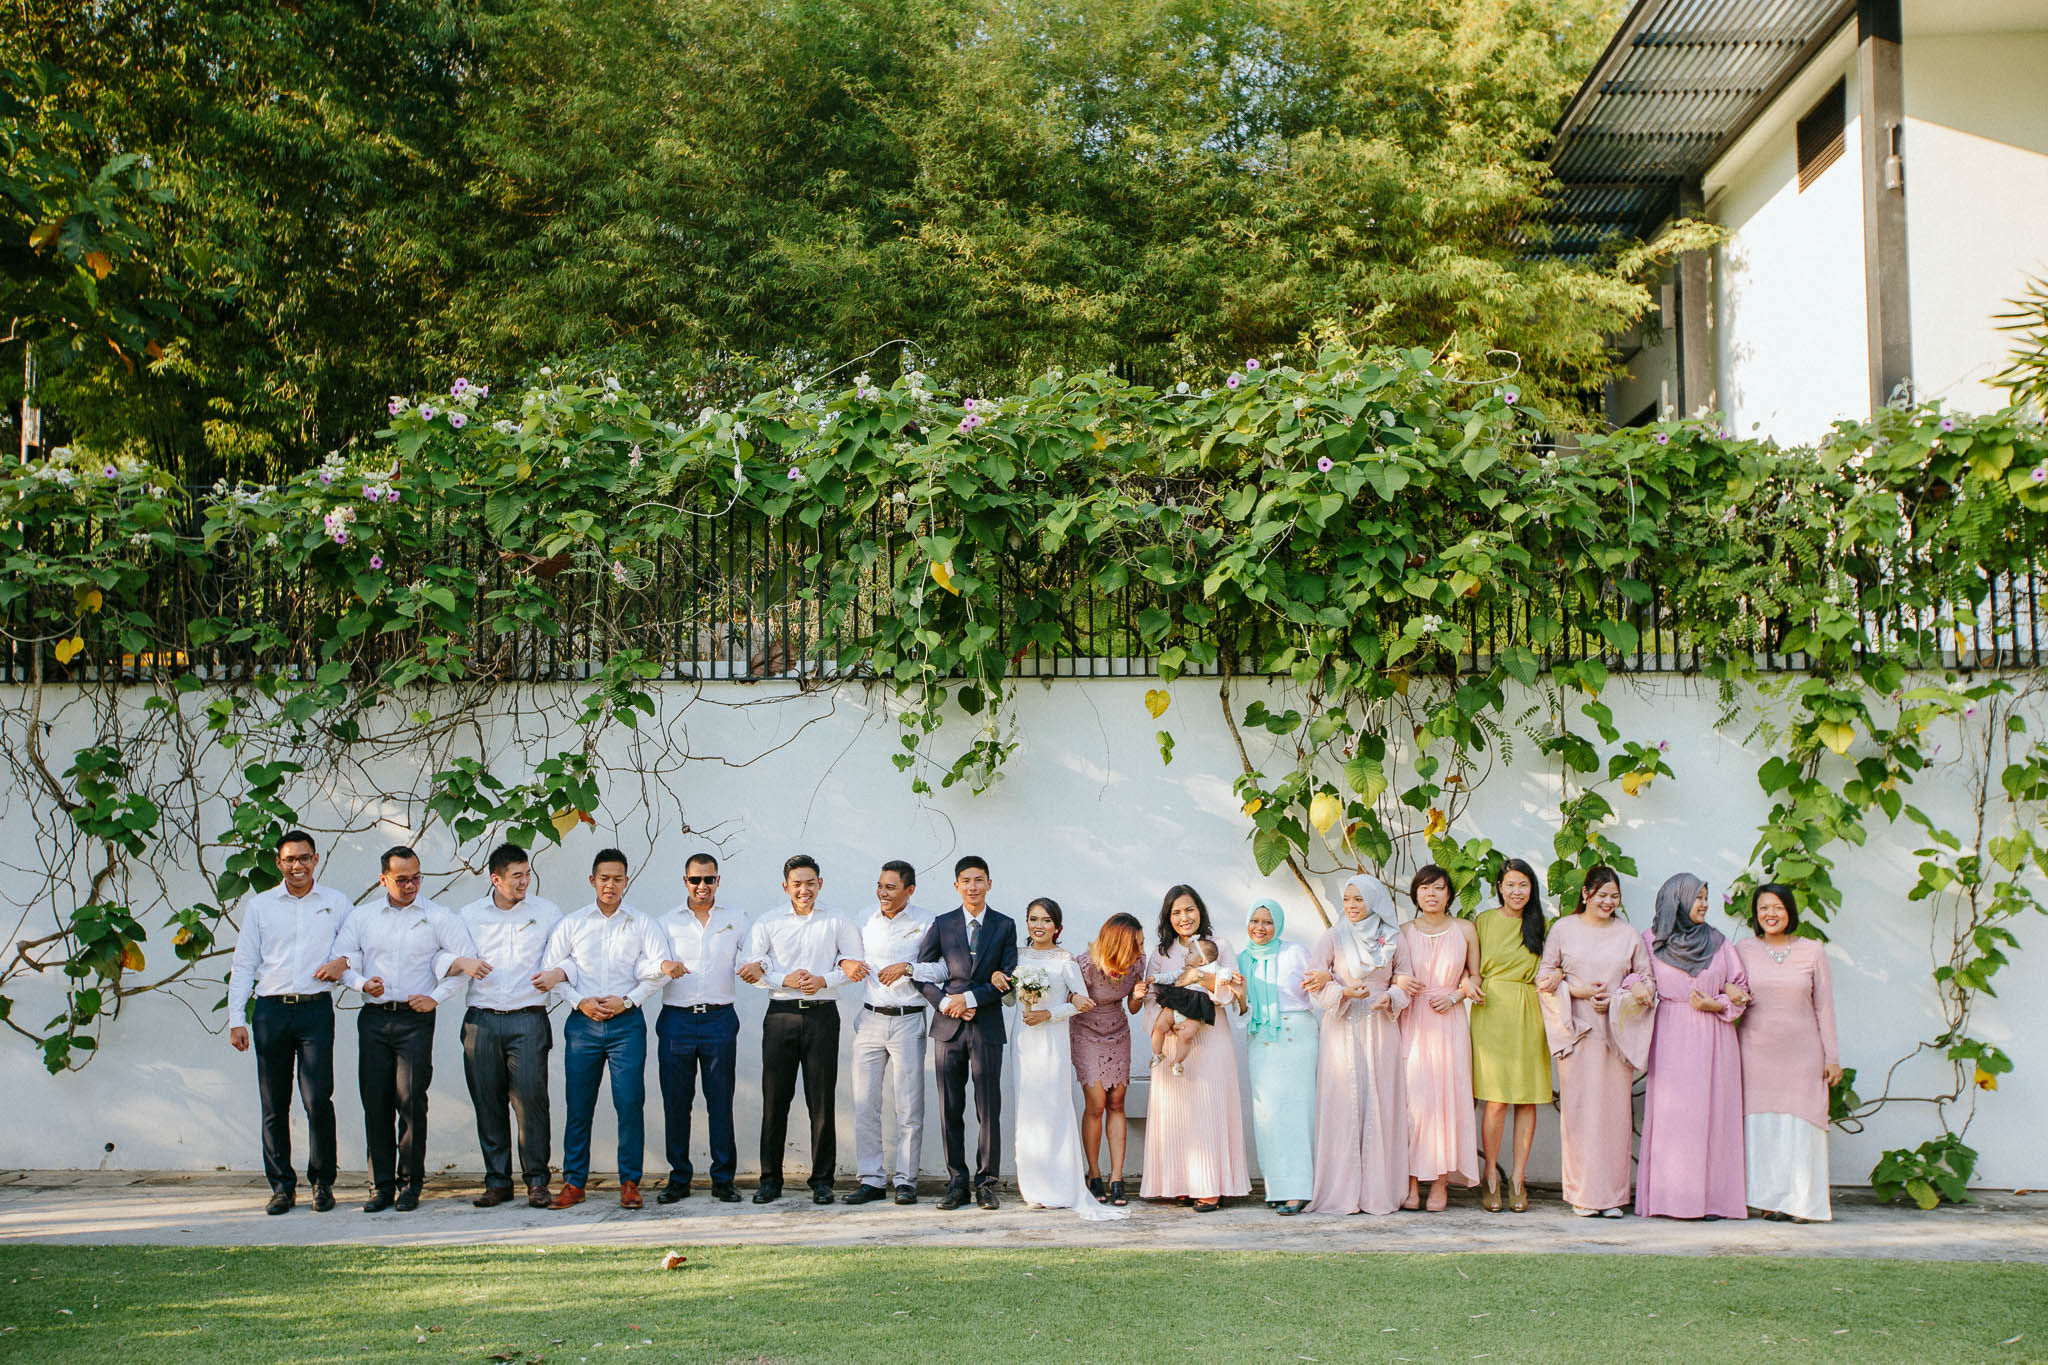 singapore-wedding-photographer-wedding-halimah-muhsin-051.jpg